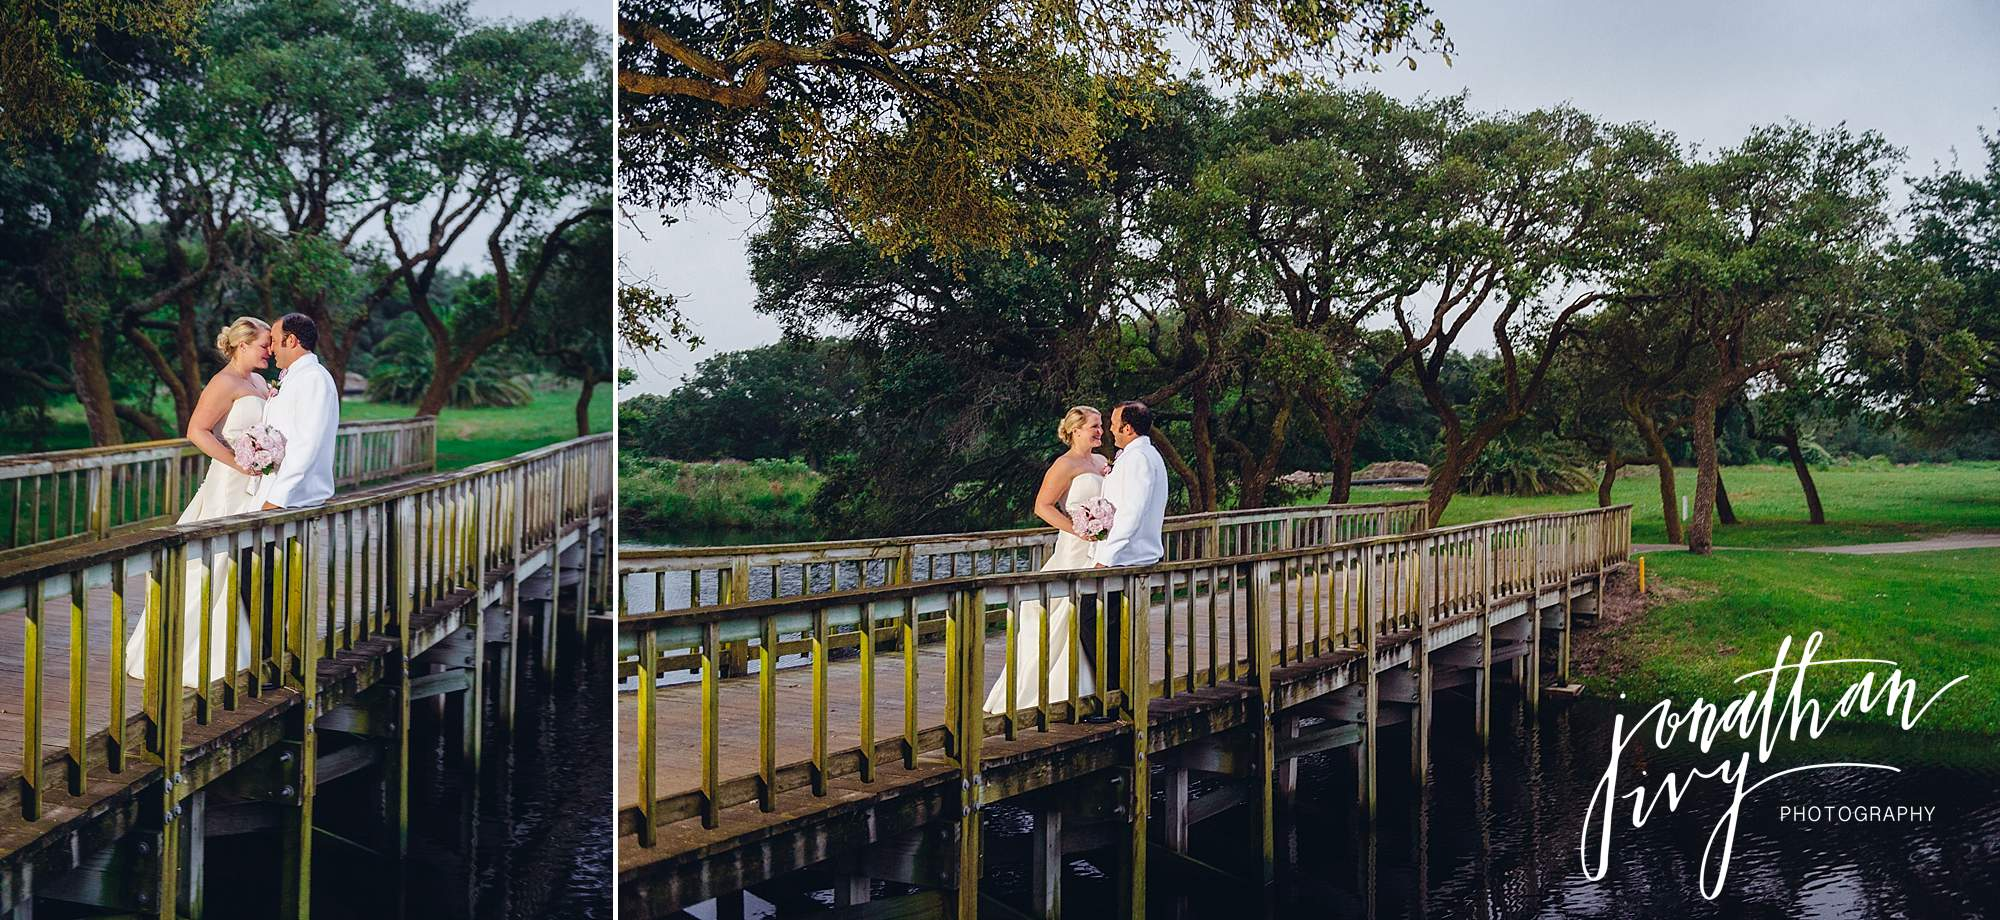 Rockport Tx wedding photographer